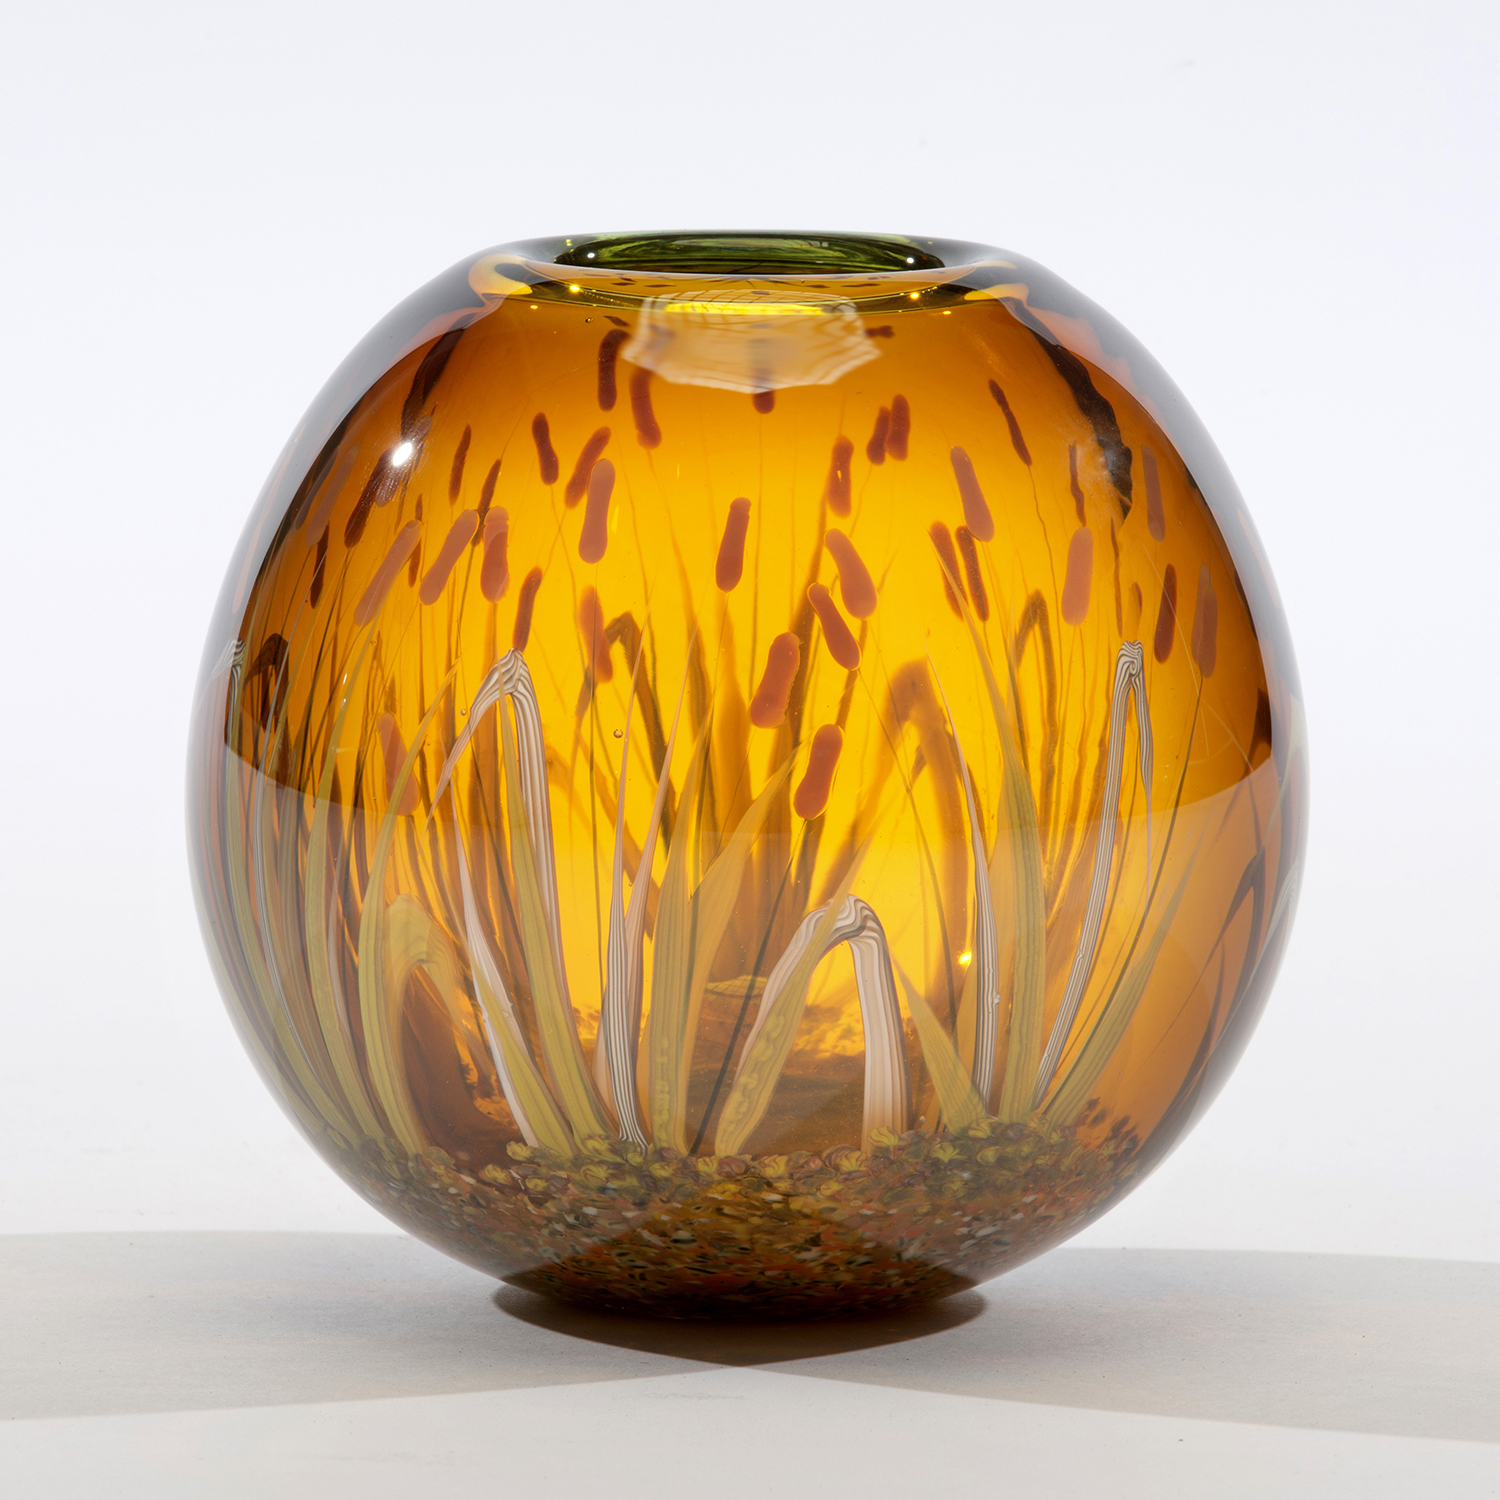 Mark Peiser, master glass artist represented by Wexler Gallery in Philadelphia, PA.